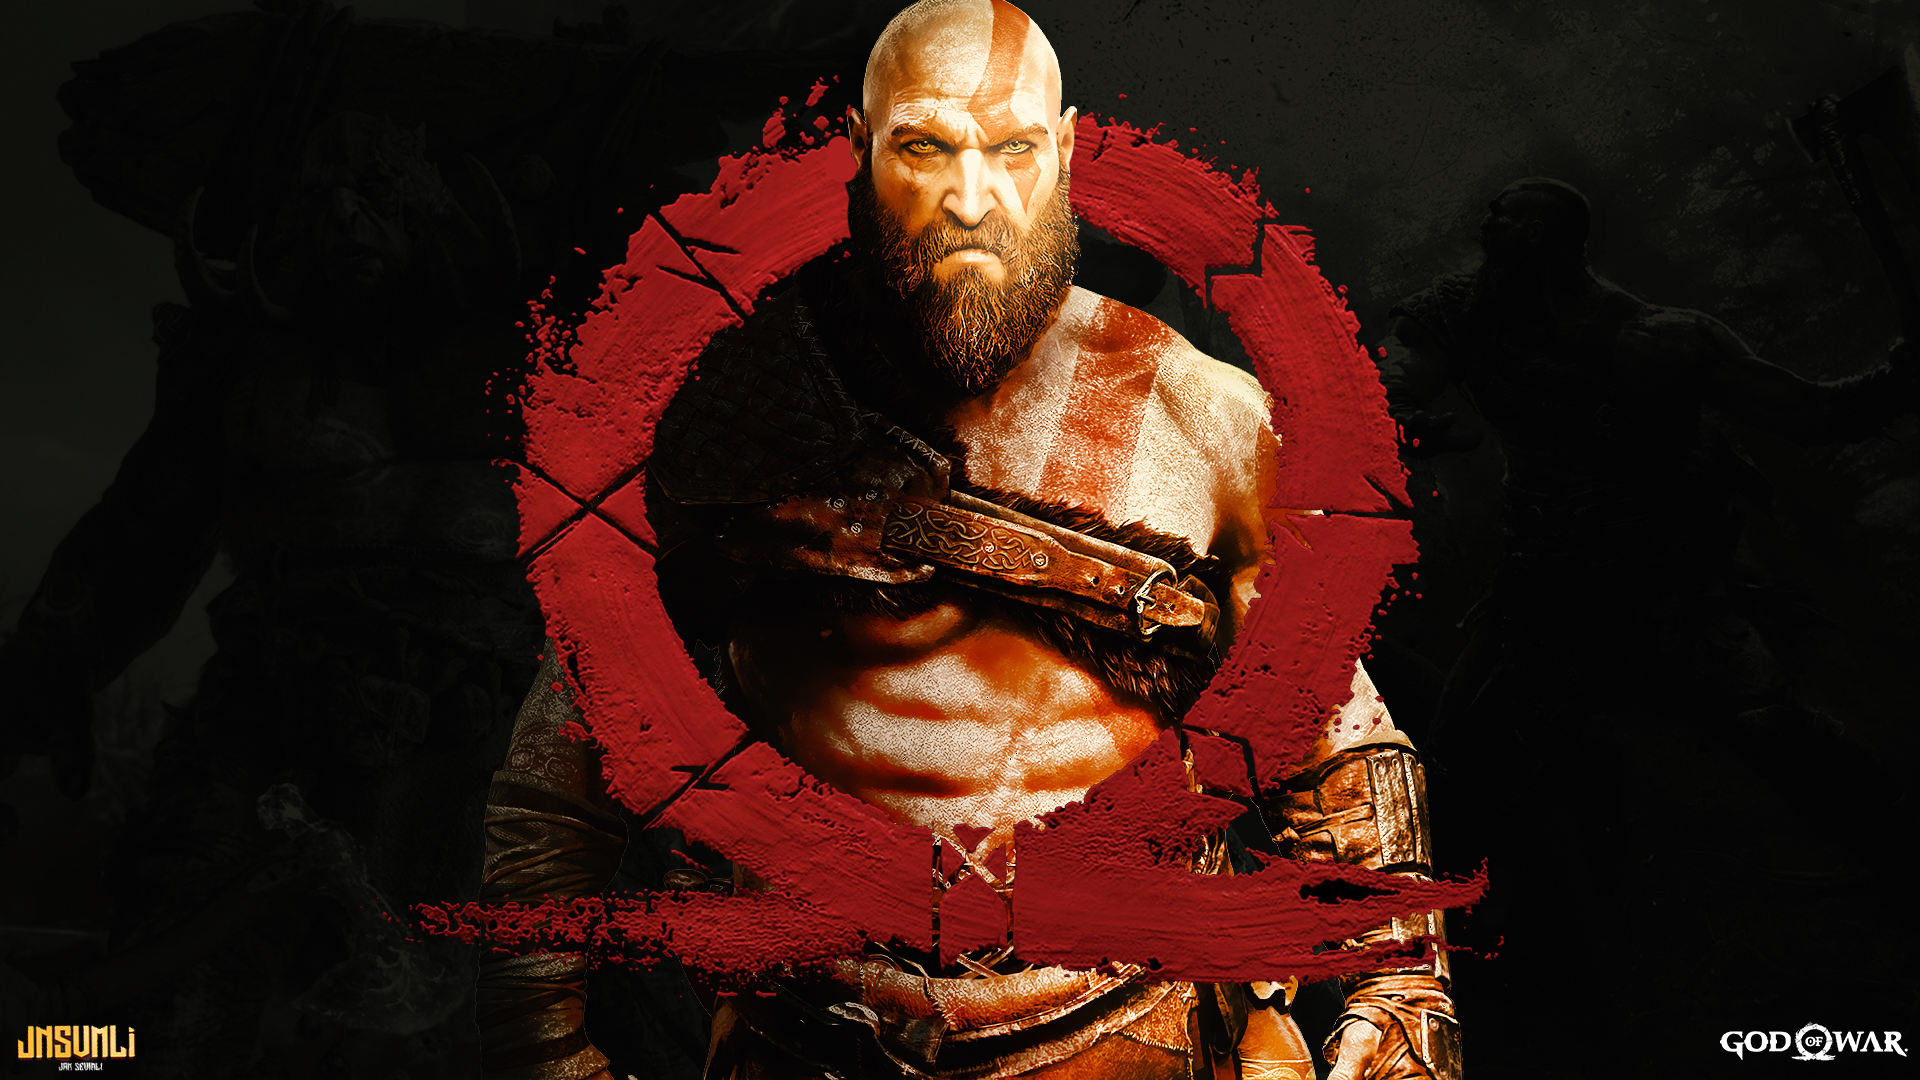 God Of War 4 Wallpaper Jnsvmli By Jnsvmli On Deviantart